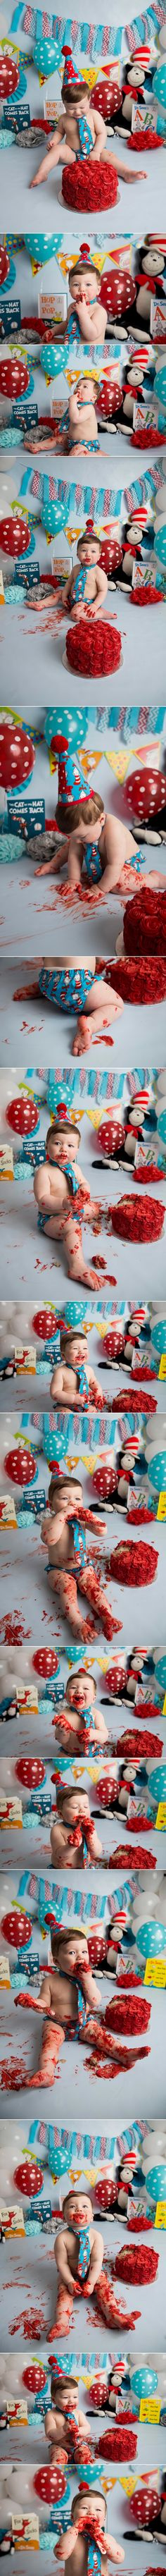 Cat in the Hat Cake Smash | Holly Schaeffer Photography Red Blue Dr Suess Cake Smash Photographer